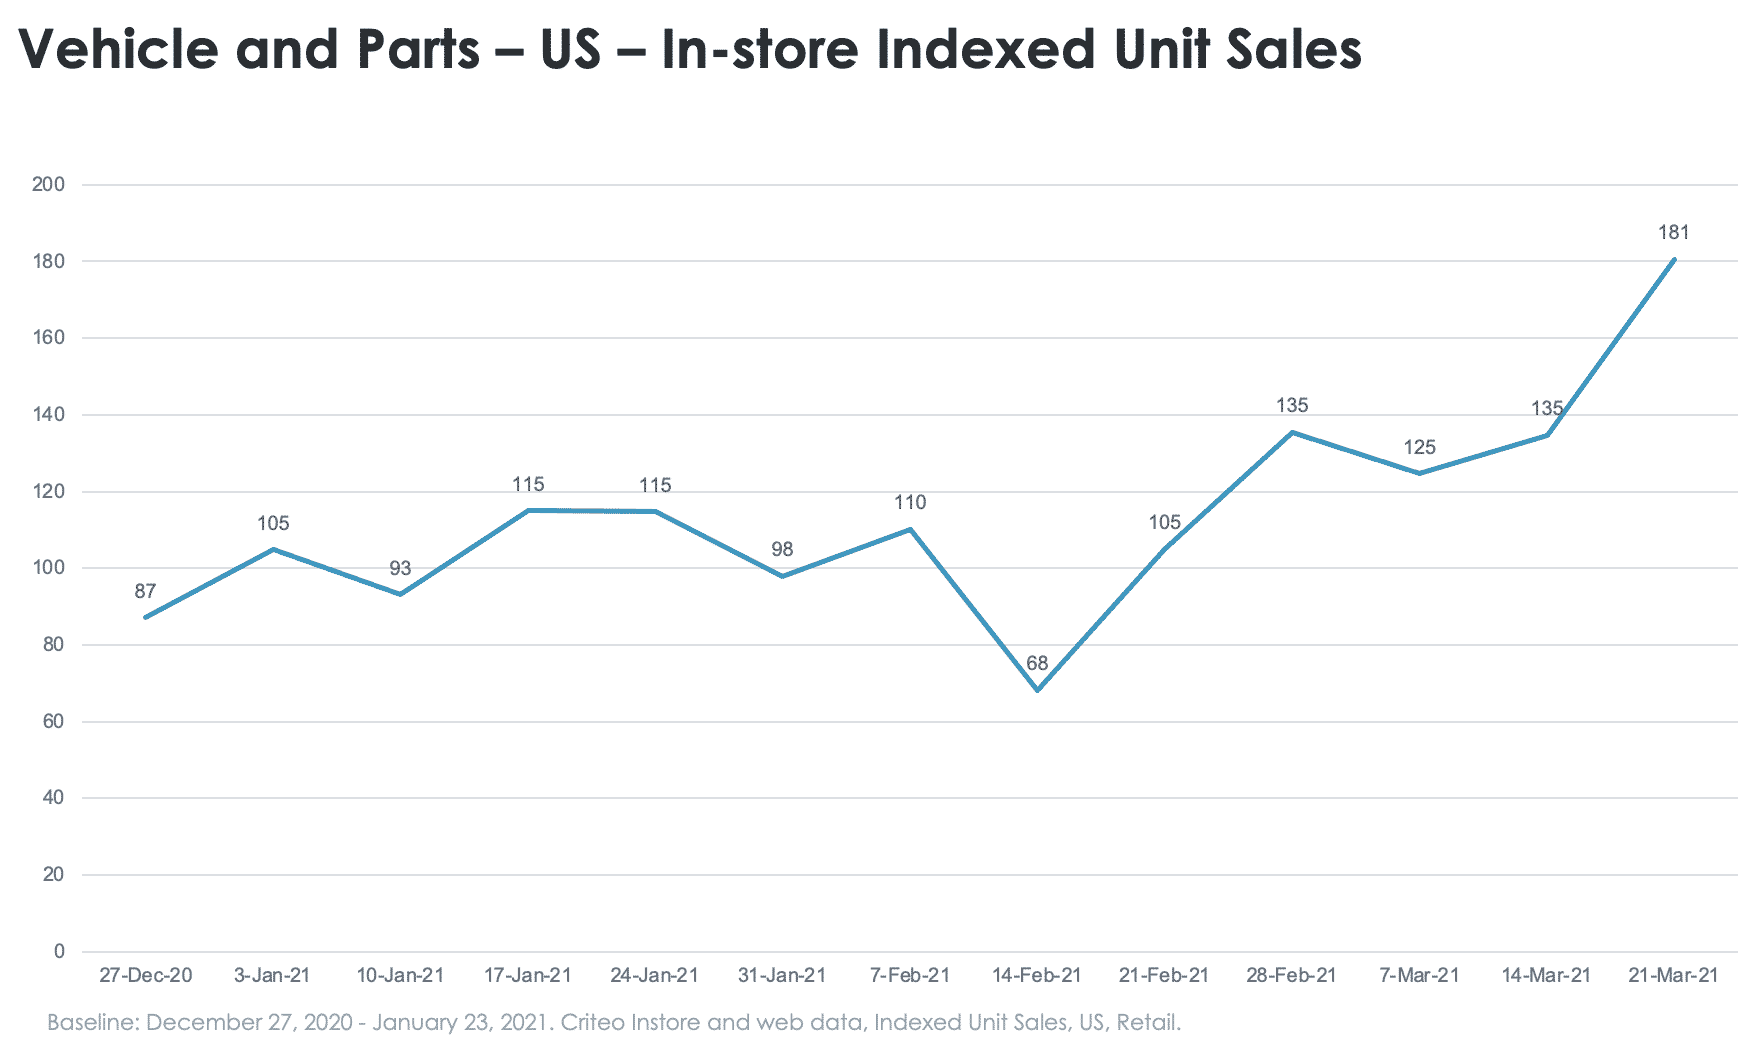 Vehicles and parts in-store sales